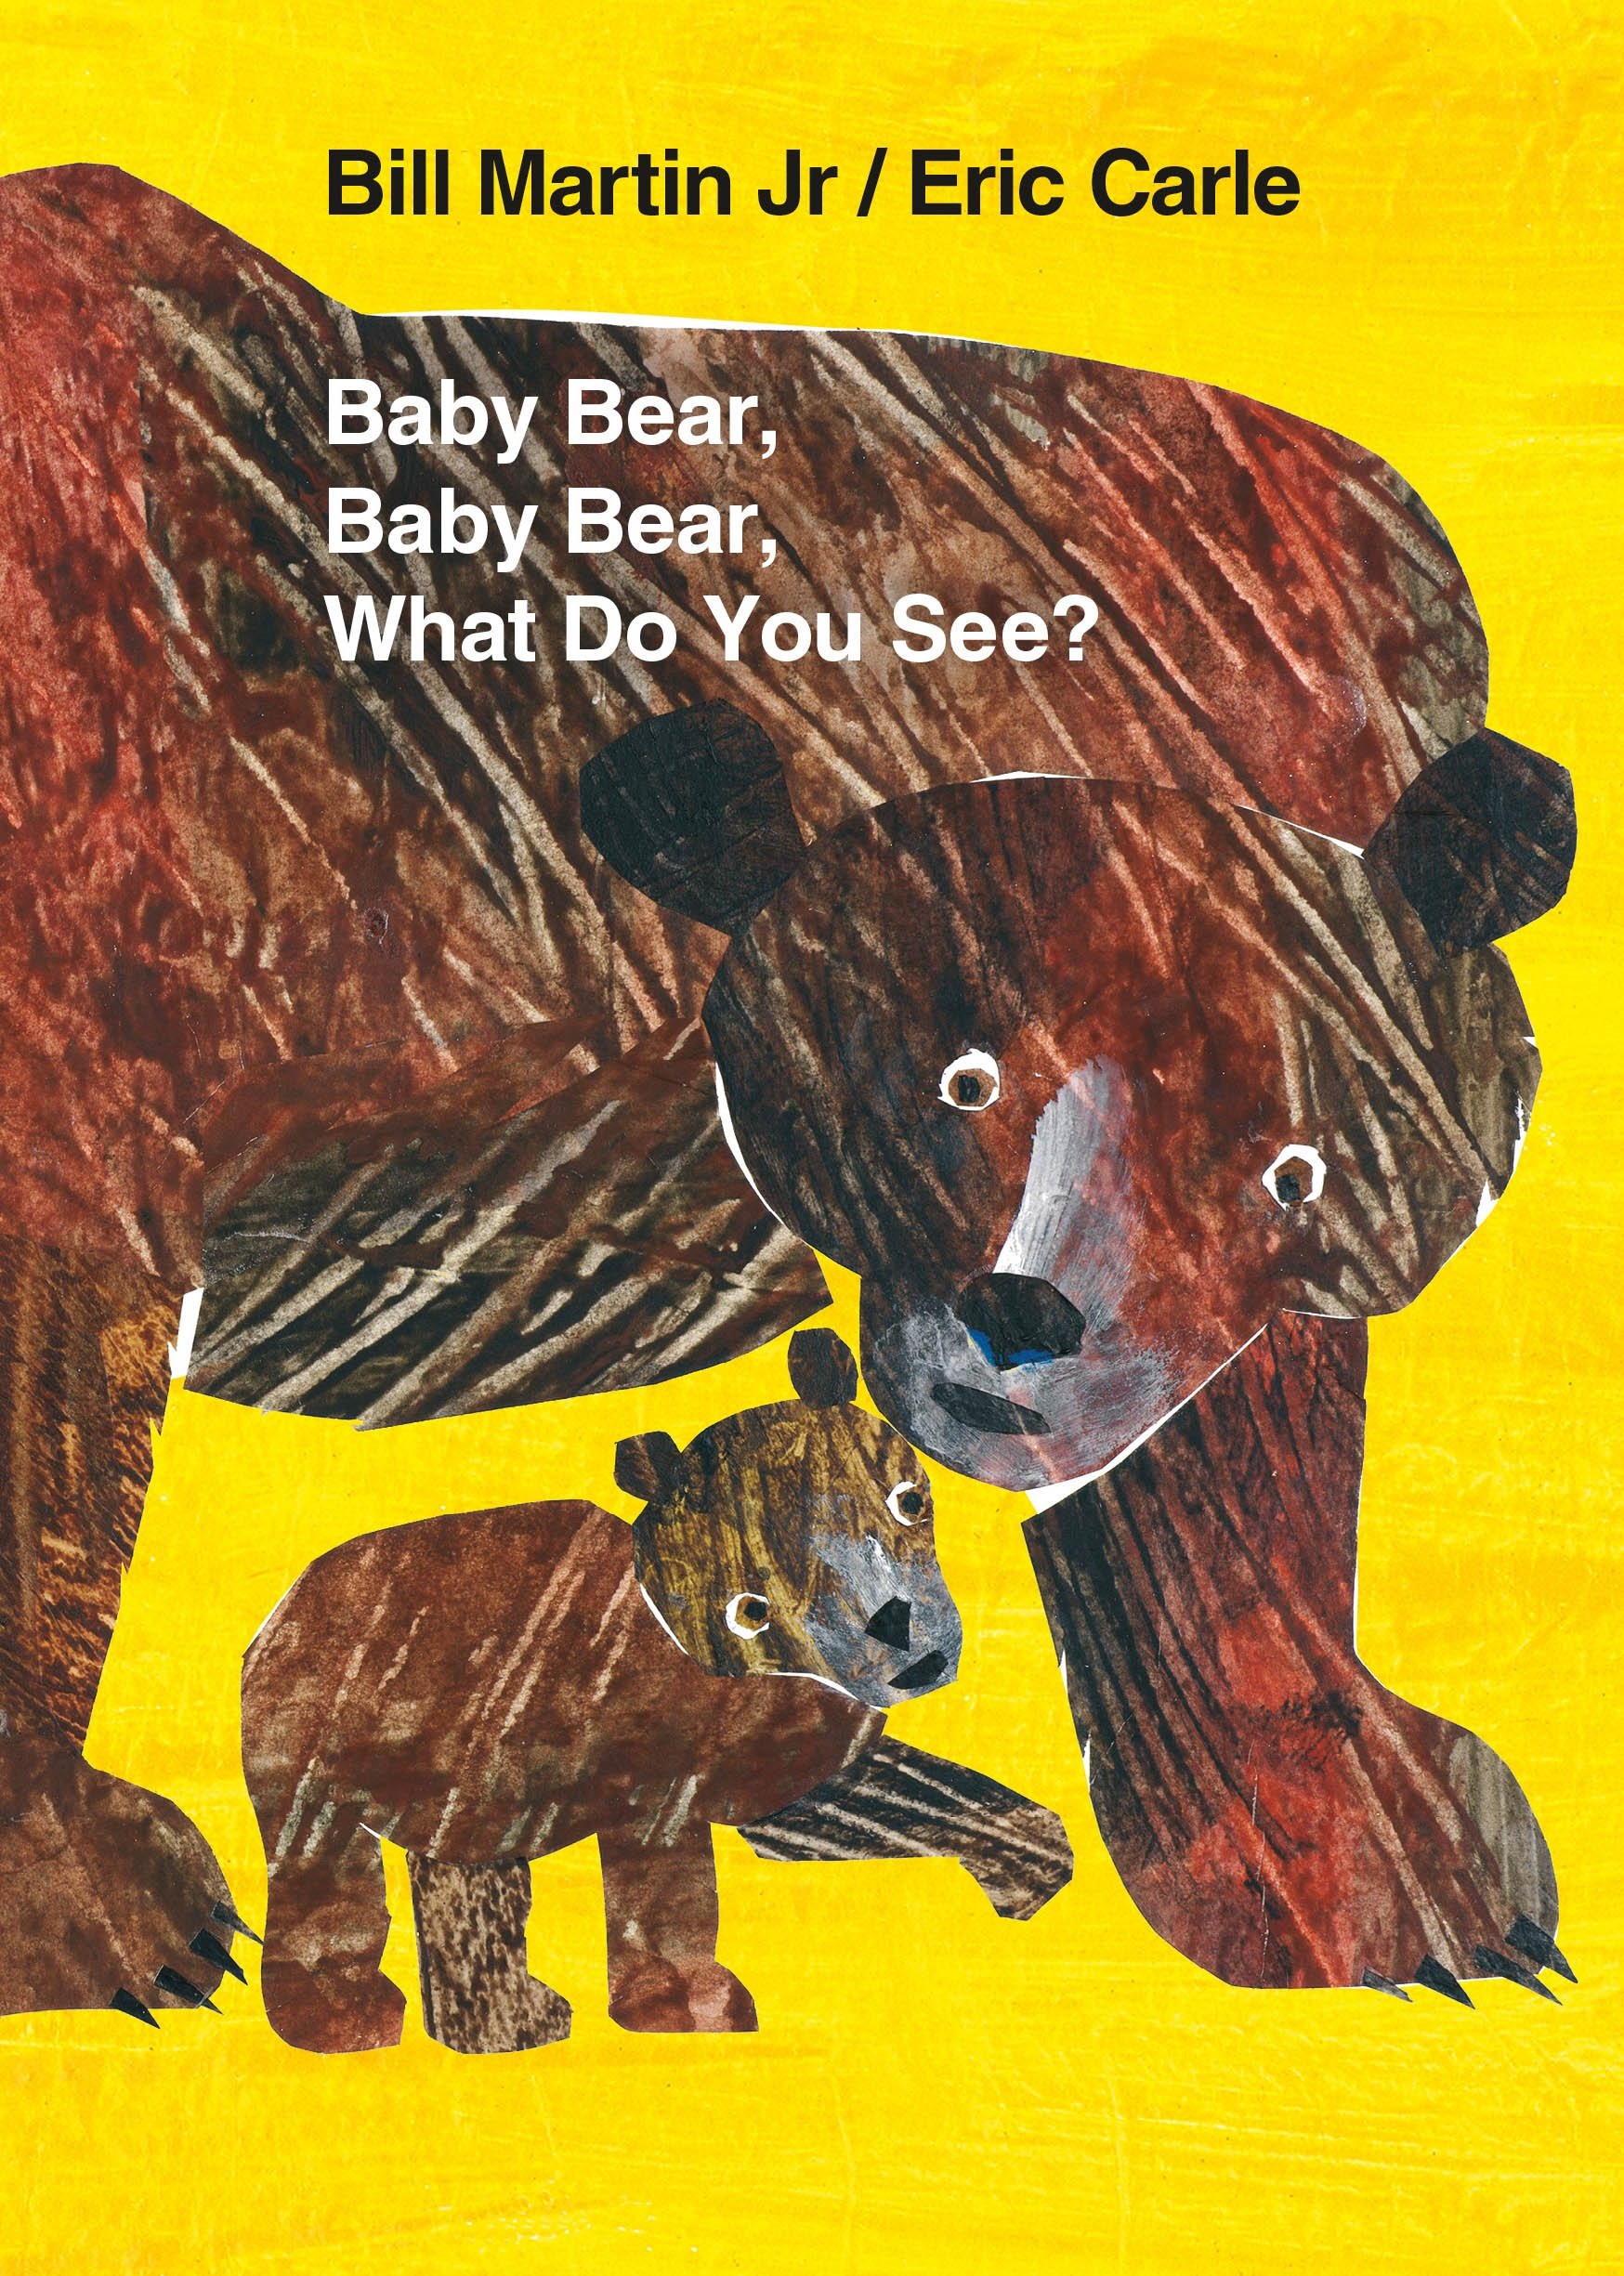 Amazon Com Baby Bear Baby Bear What Do You See Board Book Brown Bear And Friends 9780805089905 Martin Jr Bill Carle Eric Books